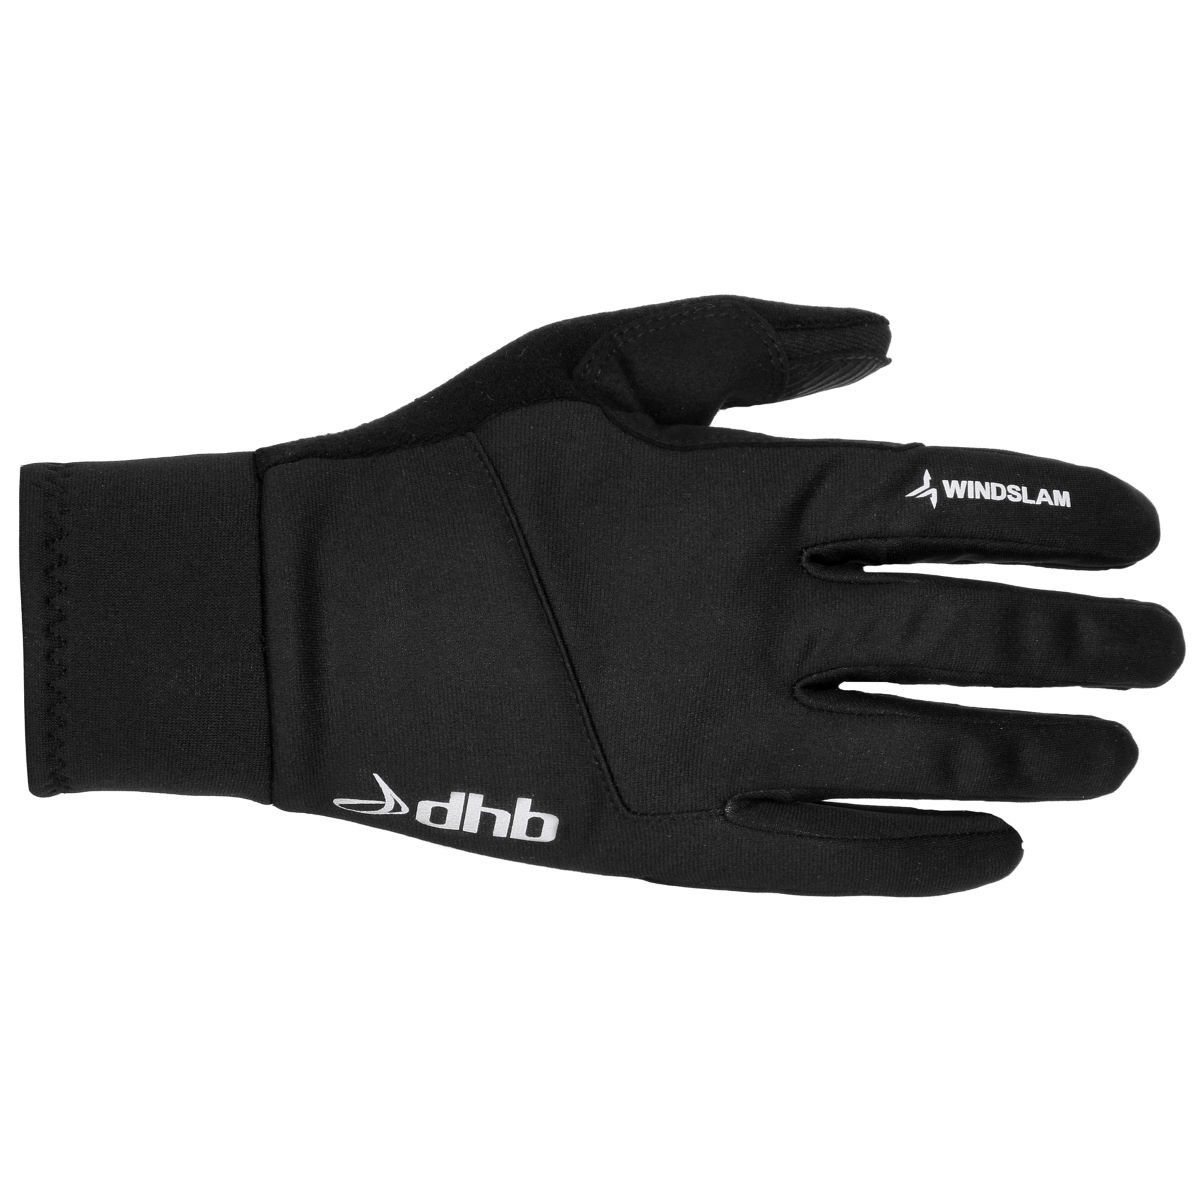 ComprarGuantes dhb Windproof - Guantes